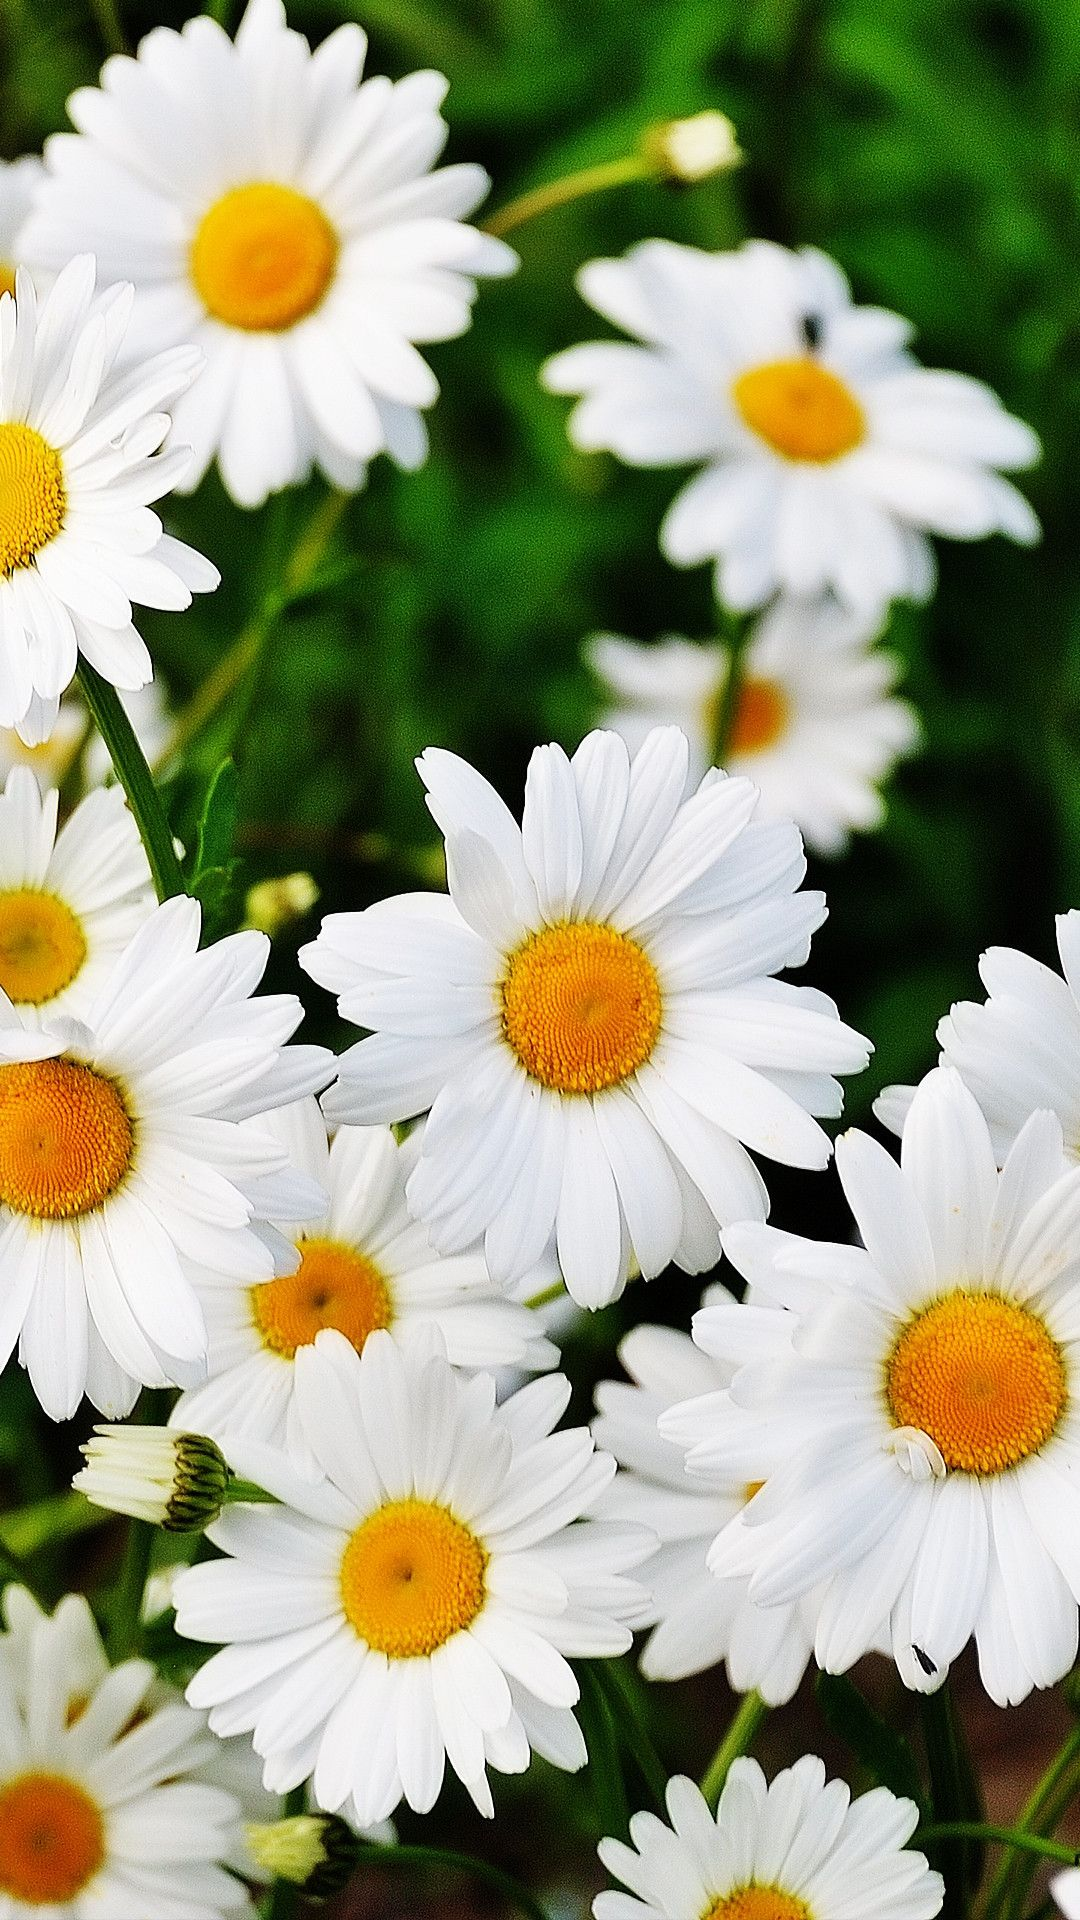 54 Daisy Flower Wallpapers On Wallpaperplay Flower Wallpaper Beautiful Flowers Wallpapers Best Flower Wallpaper Flower wallpaper vertical hd